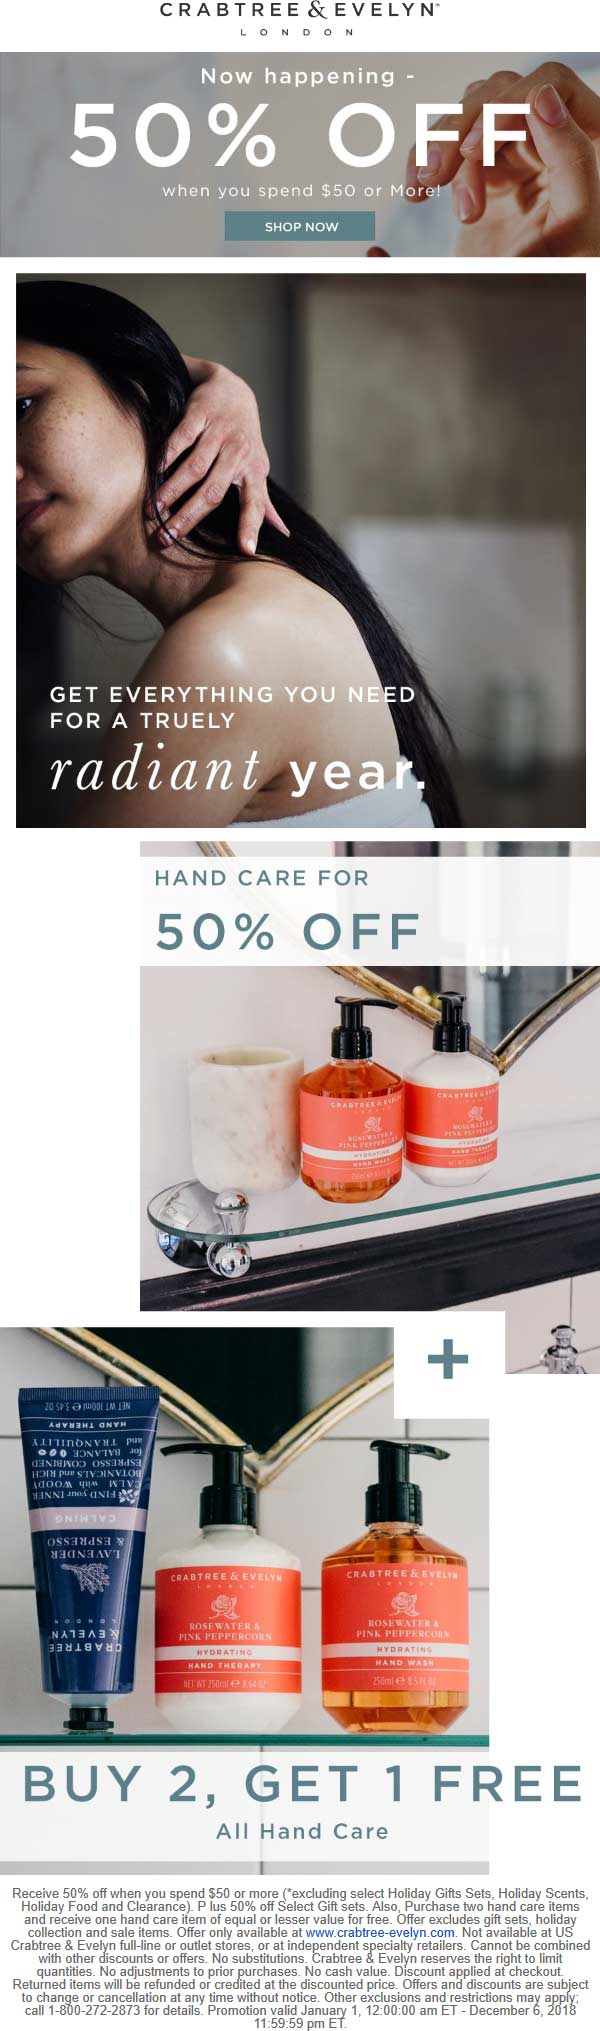 Crabtree & Evelyn Coupon November 2019 50% off $50+ & more online at Crabtree & Evelyn